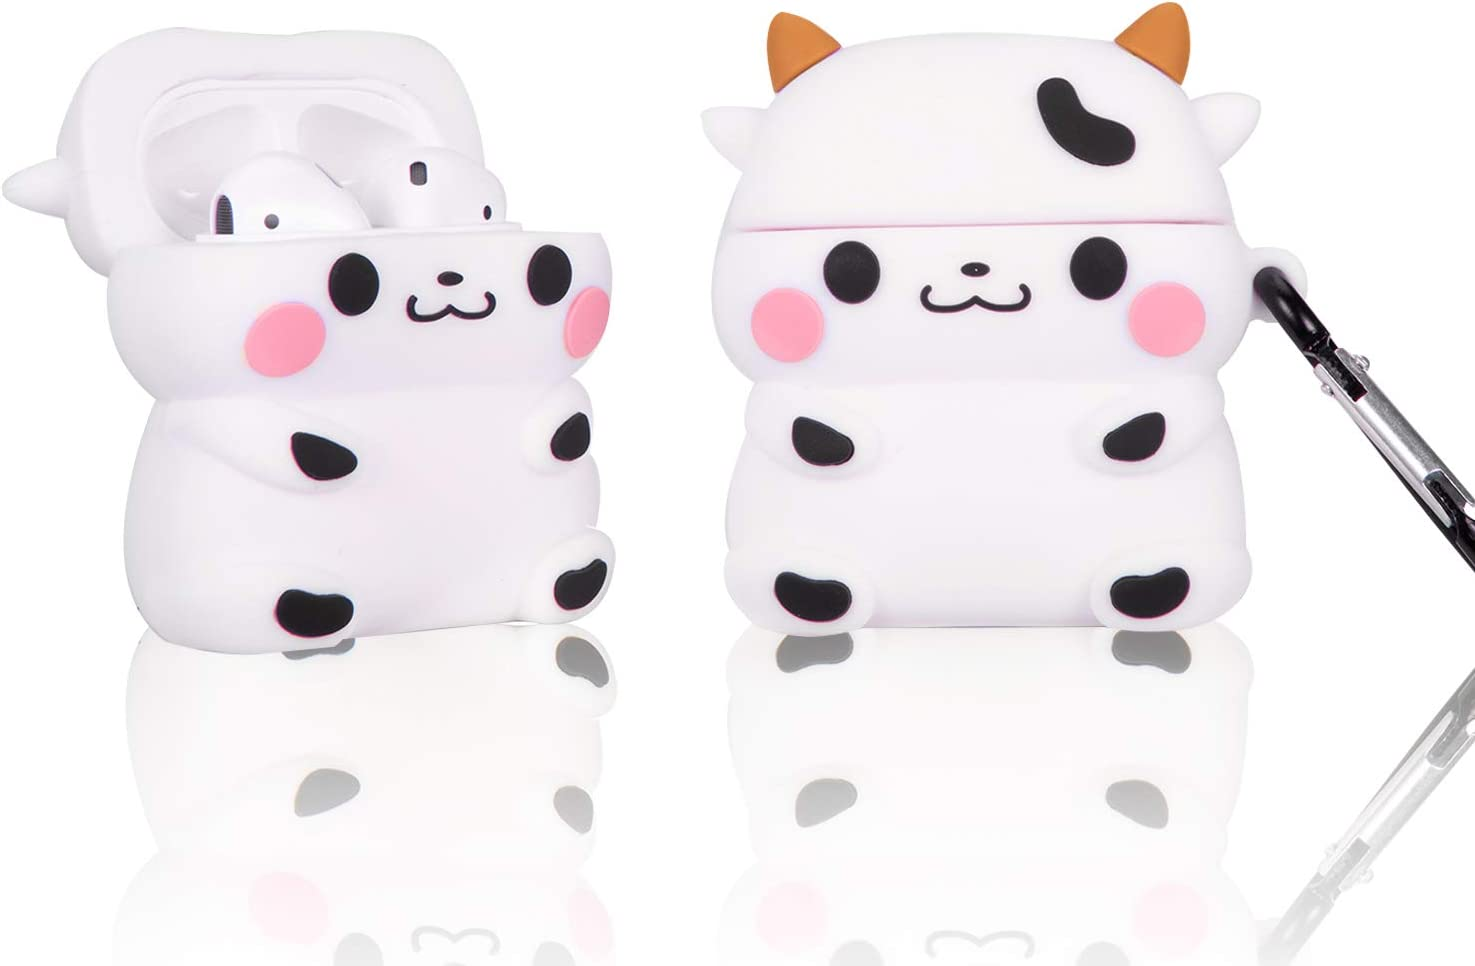 Cow for Airpods 1/2 case Cover, Silicone 3D Cool Cute Kawaii Funny Cartoon Cover Design for Girls Boys Women Men,Airpod 1/2 Skin Accessories for Apple Charging Cases with Keychain (Cow)